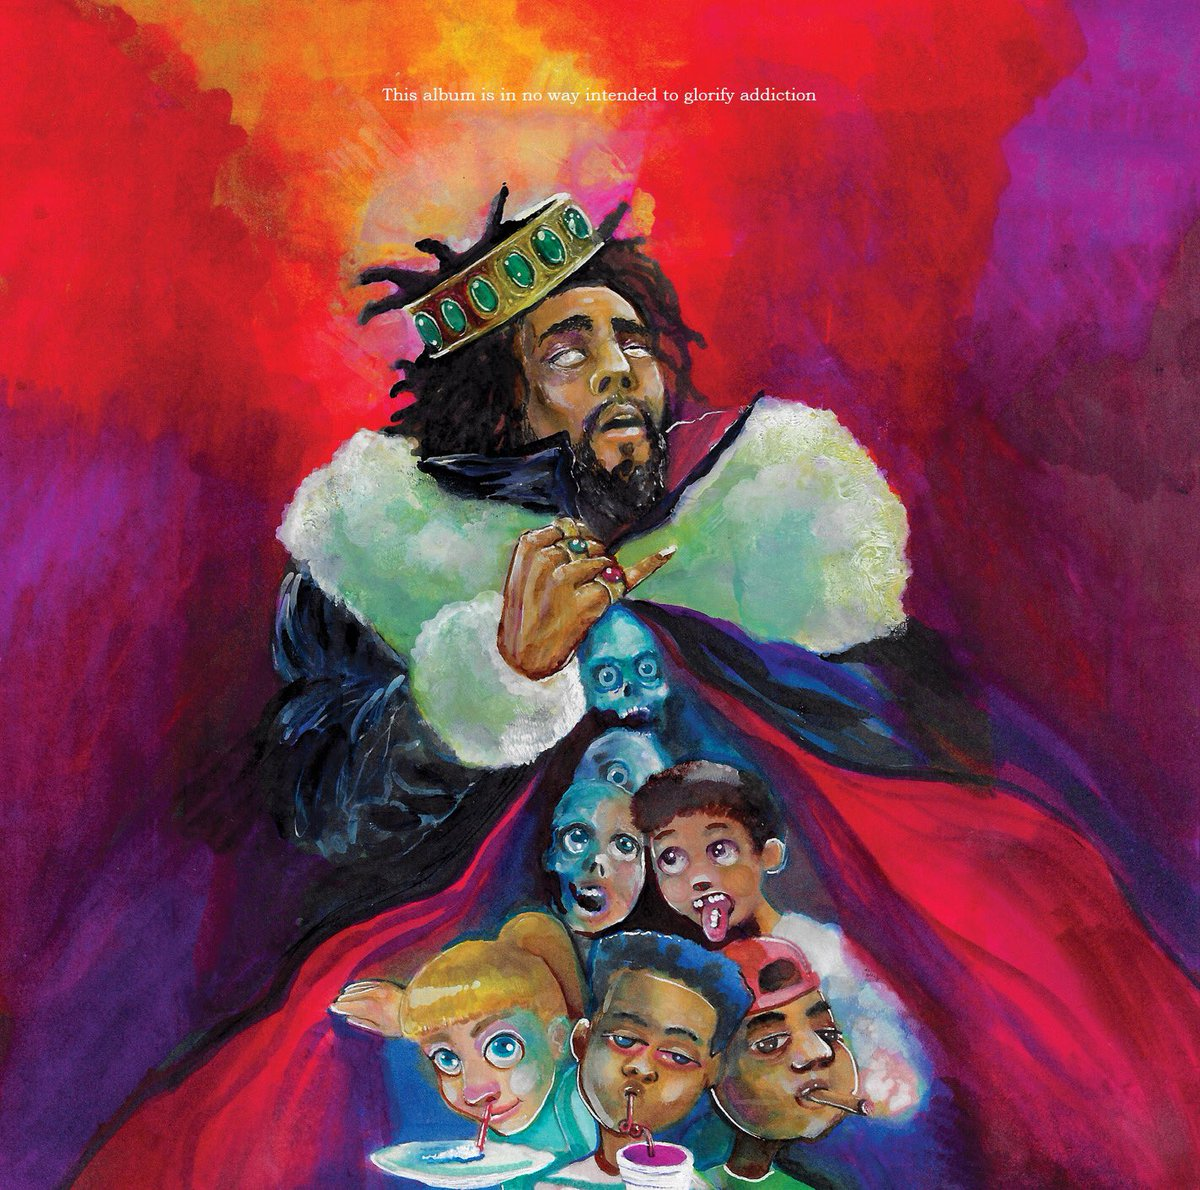 J. Cole releasing new album 'KOD' on Friday